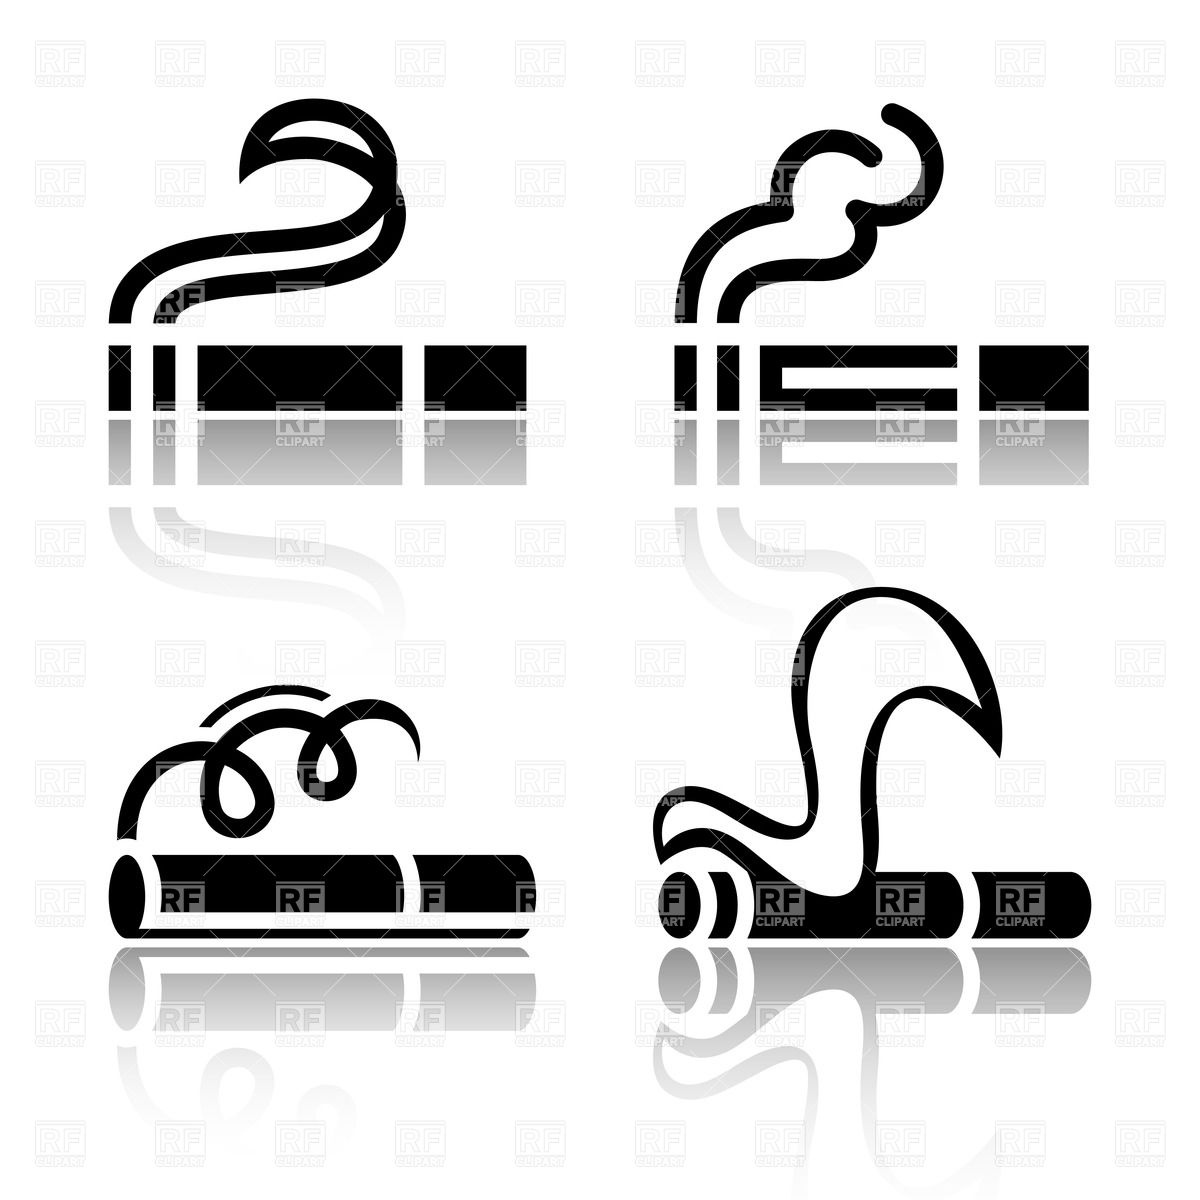 Simple Cigarette Icons 18088 Icons And Emblems Download Royalty